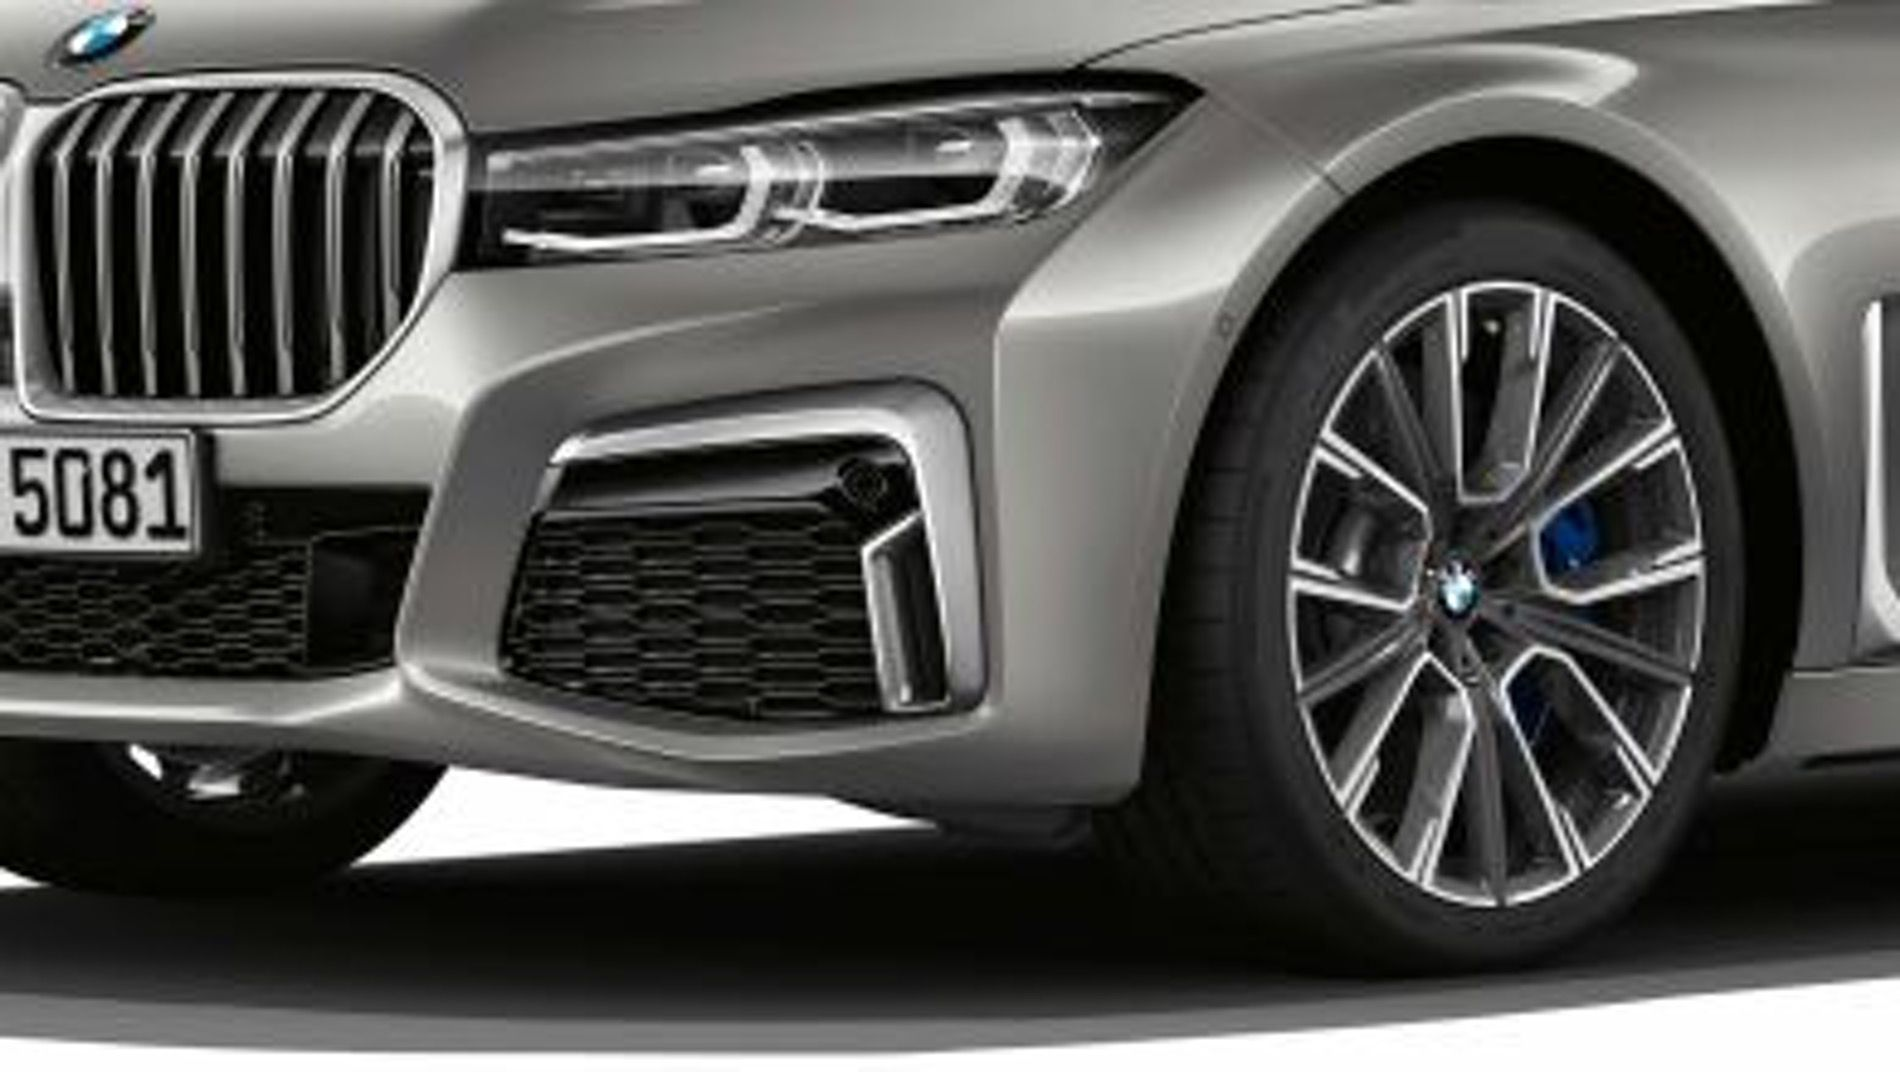 The BMW 7 Series Facelift leaks continue